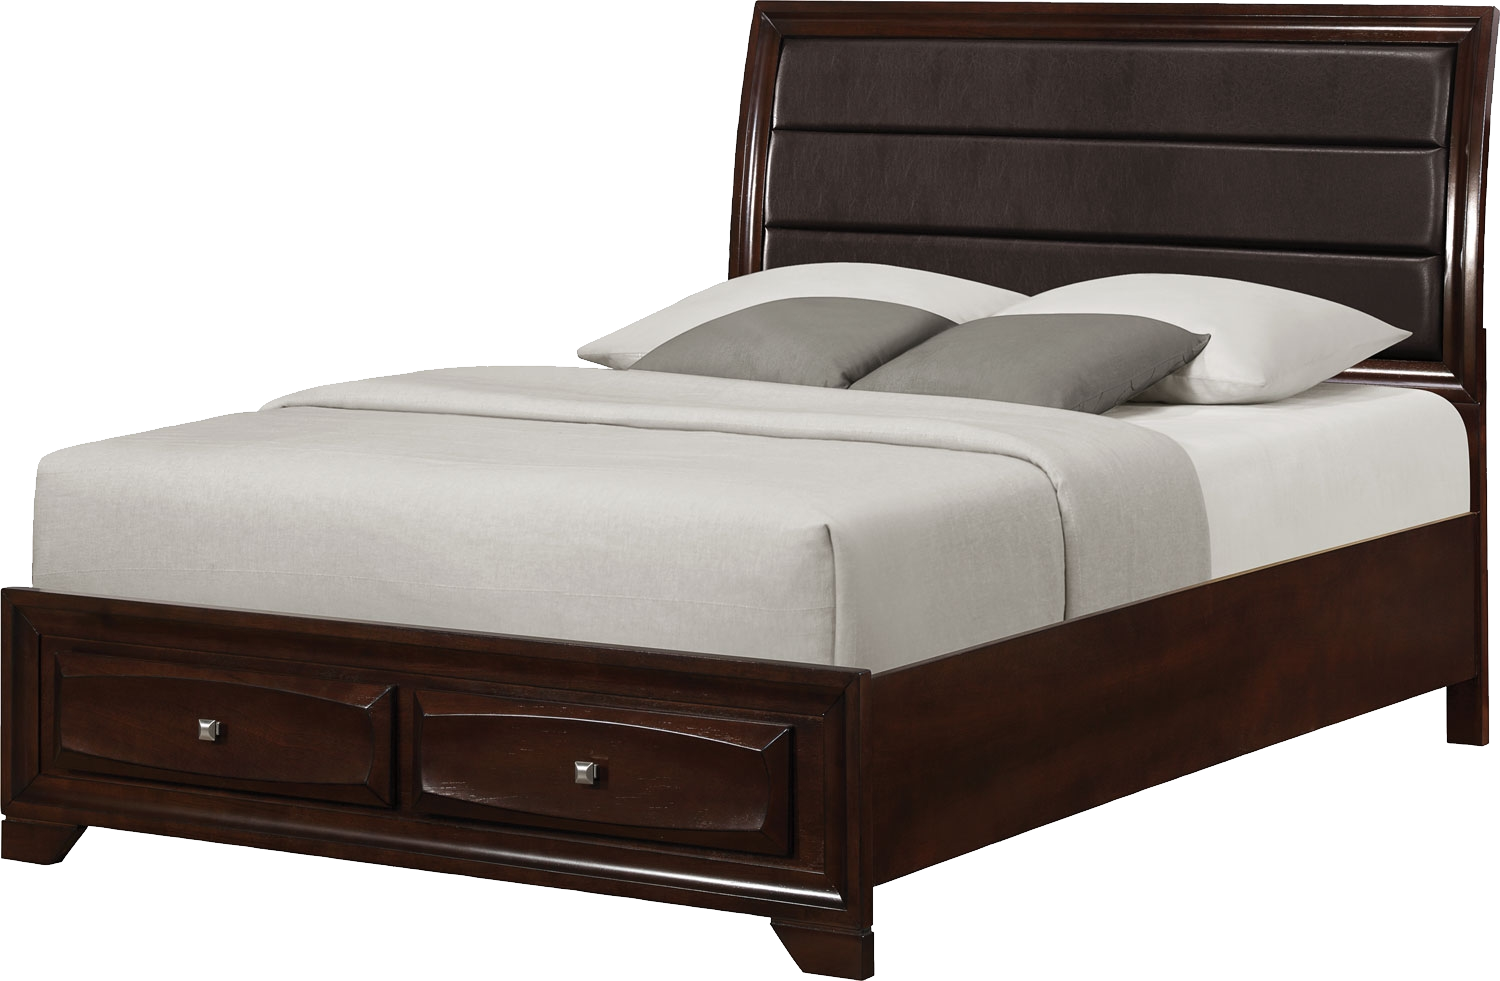 Bed PNG images free download.